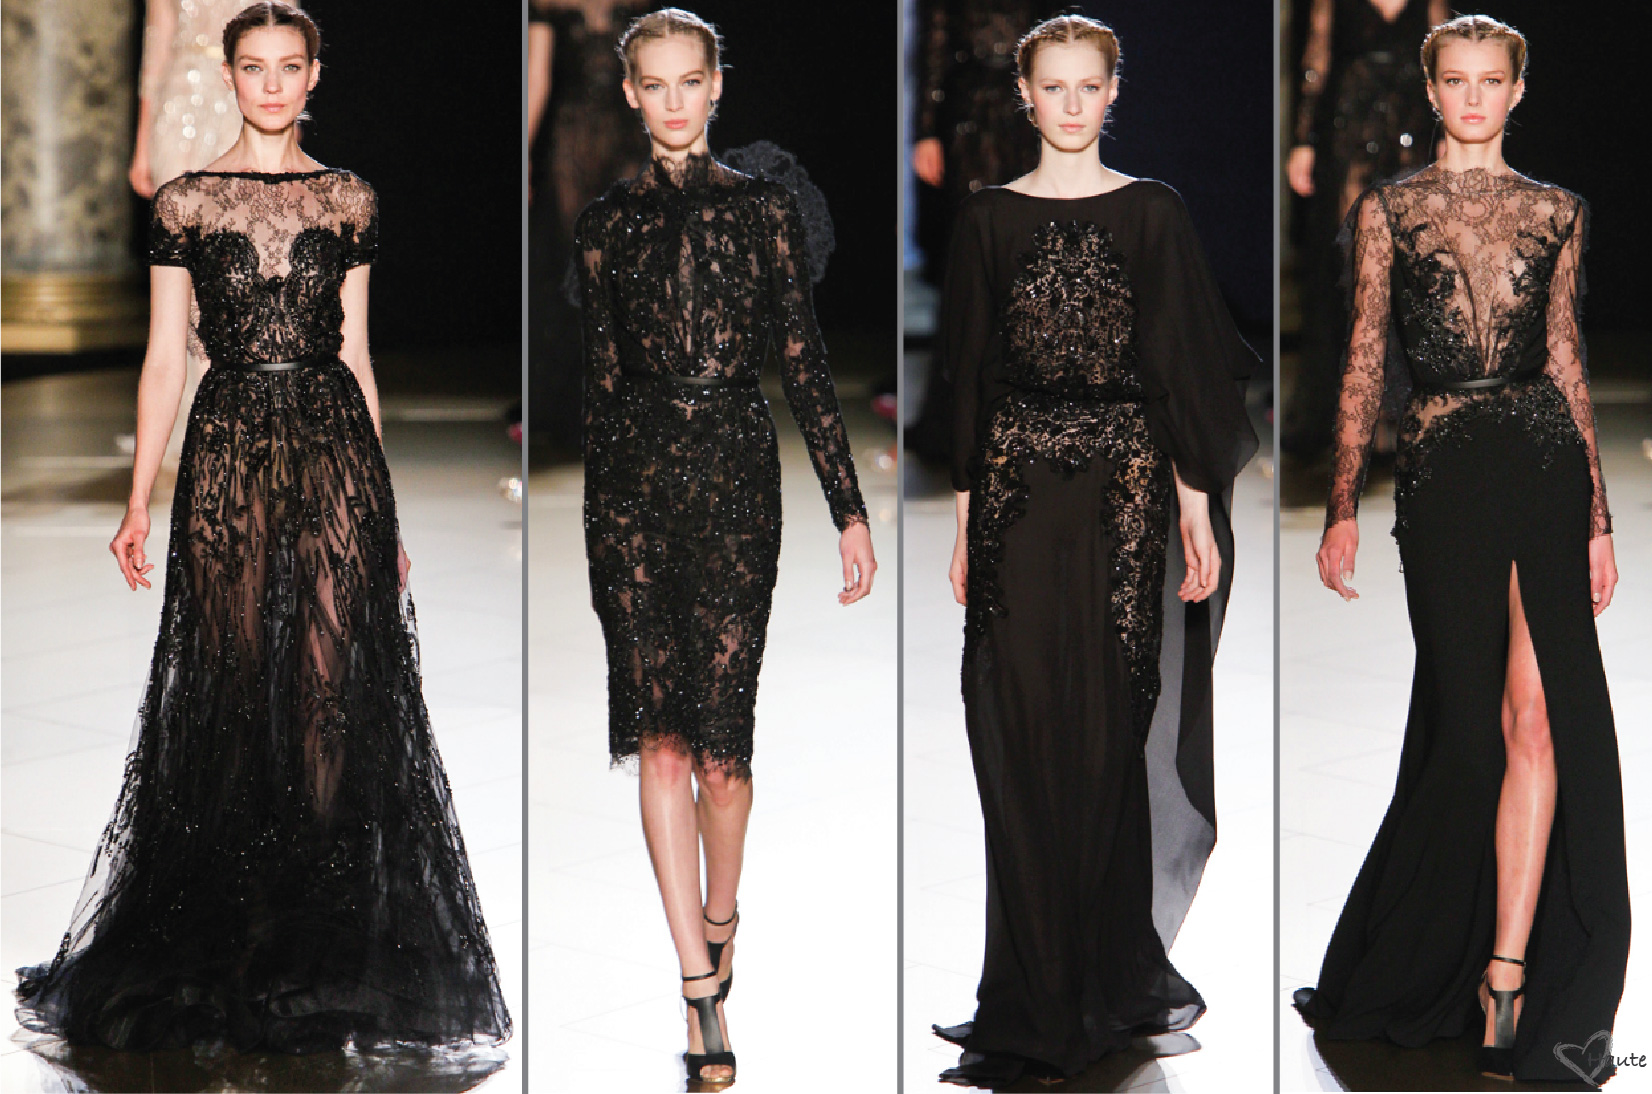 Elie saab fall 2012 haute couture collection my for Haute couture wikipedia